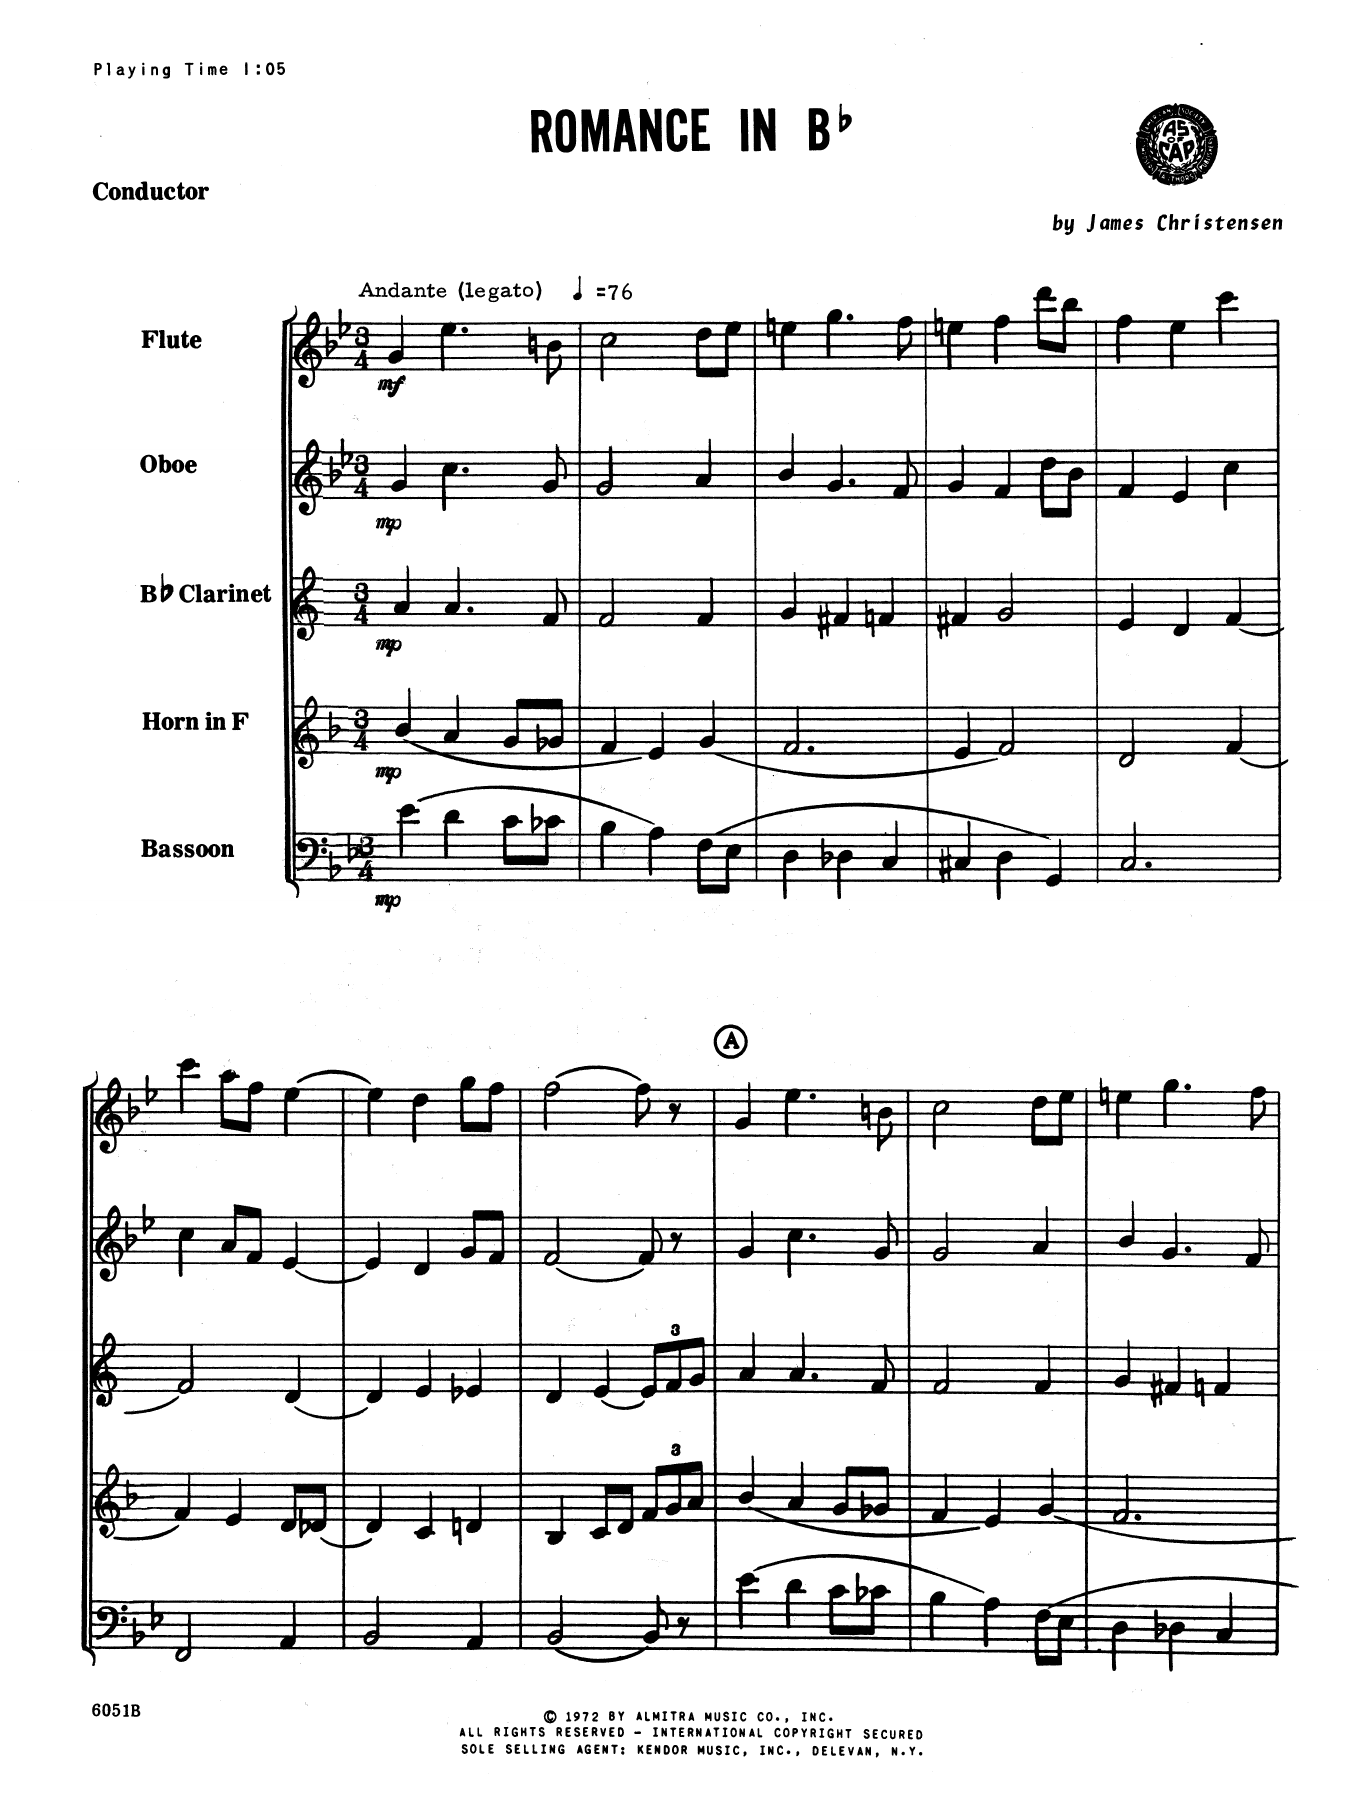 Romance In Bb (COMPLETE) sheet music for wind quintet by James Christensen